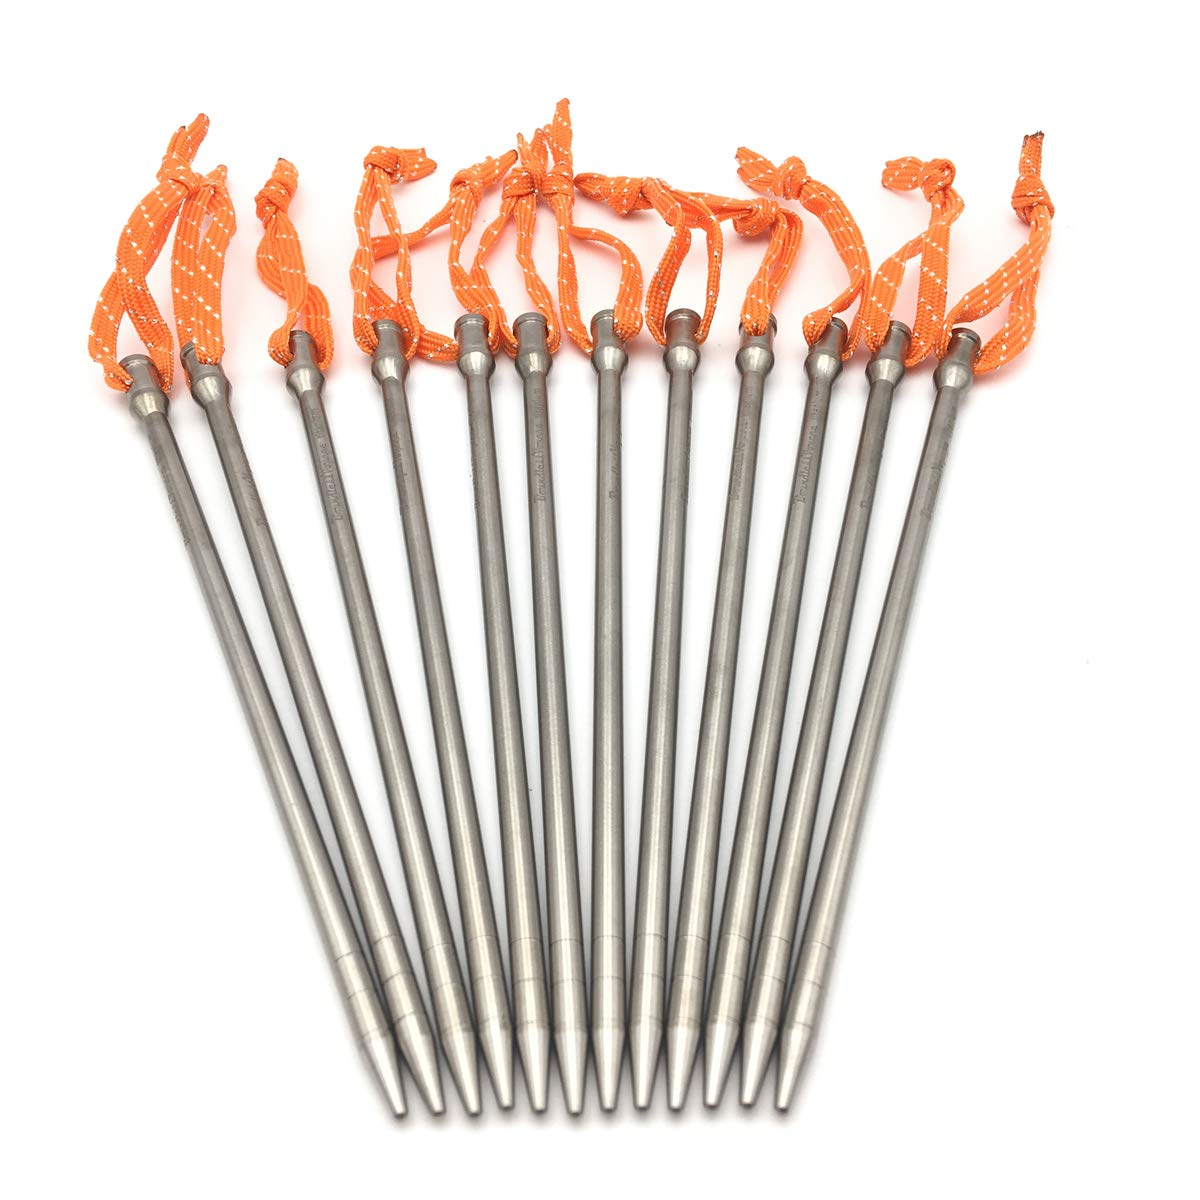 ZEARE Titanium Tent Stakes Ultra Light Titanium Alloy Tent Pegs Outdoor Camping Accessories (12 PCS) by ZEARE